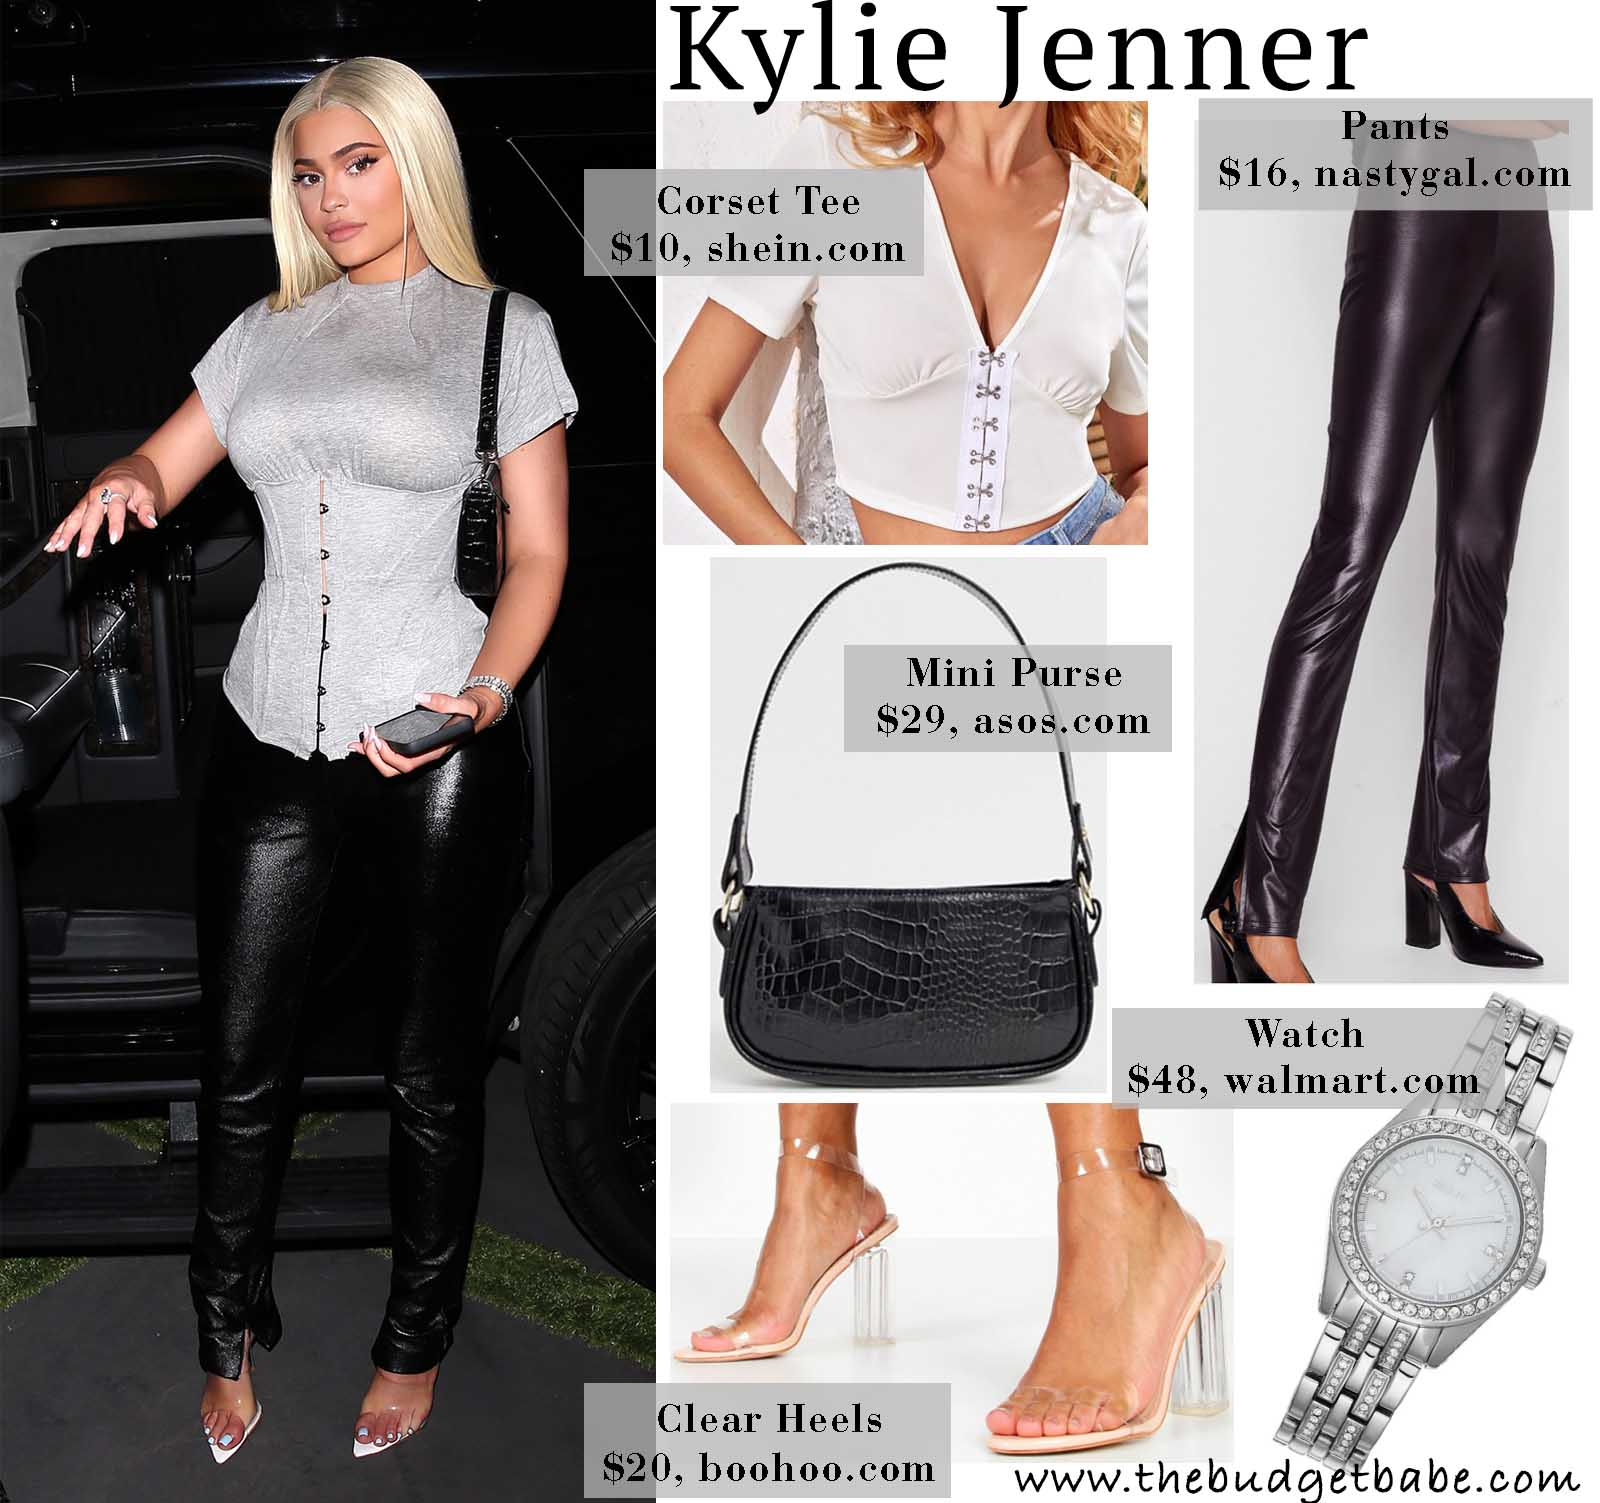 Photo of Get the Look: Kylie Jenner's Corset Tee and Leather Pants